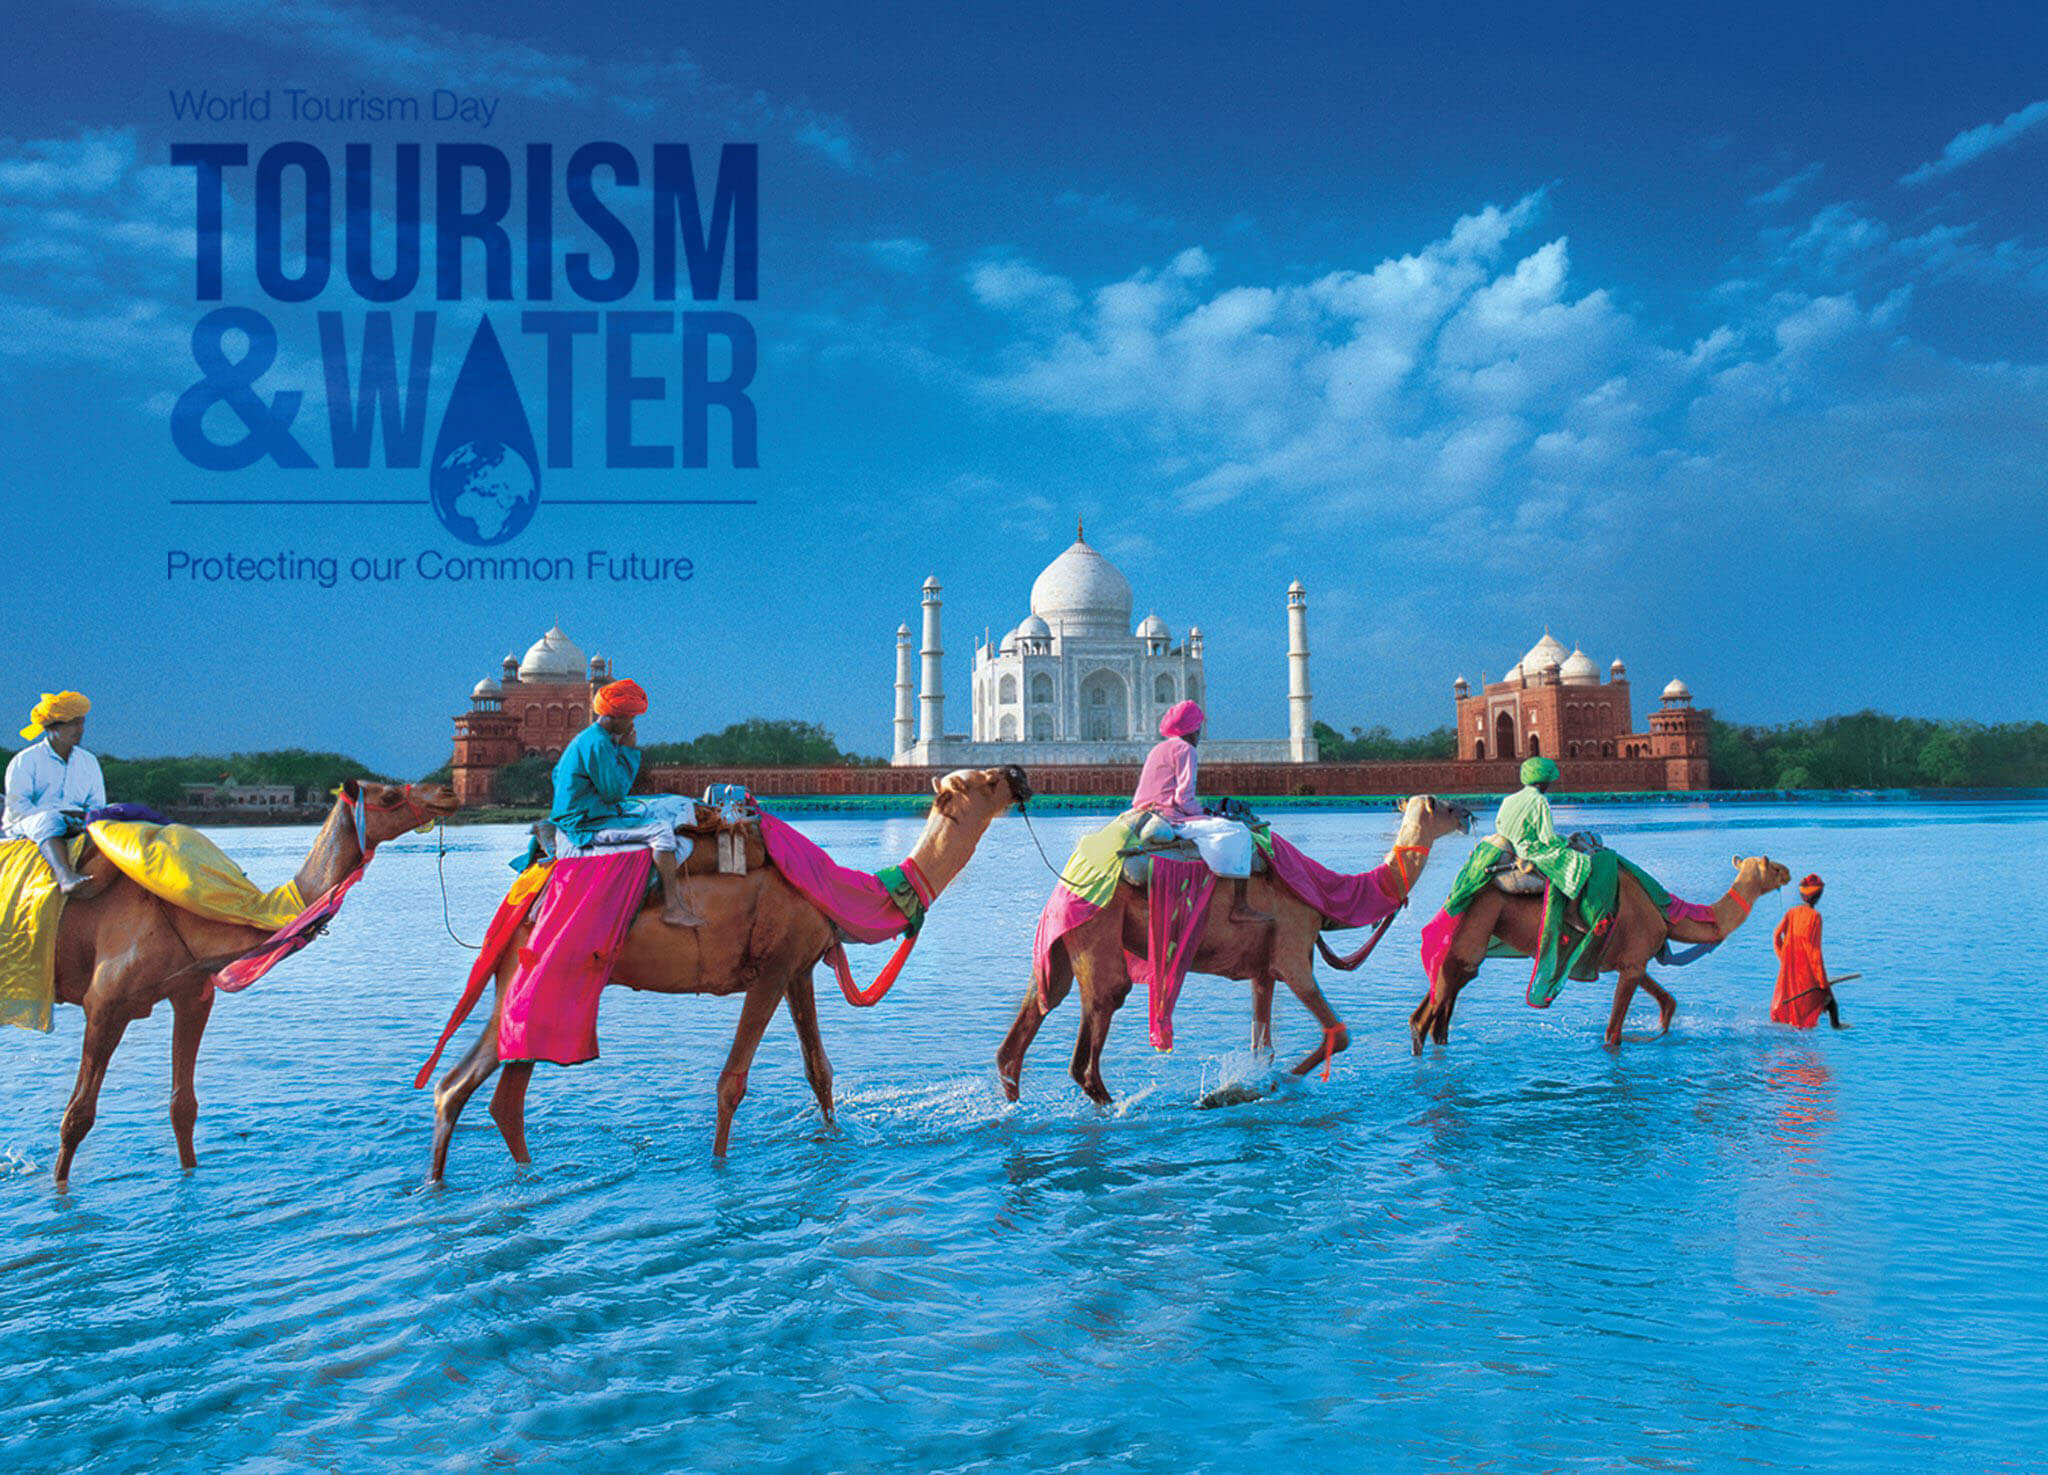 world tourism day 27th september taj mahal